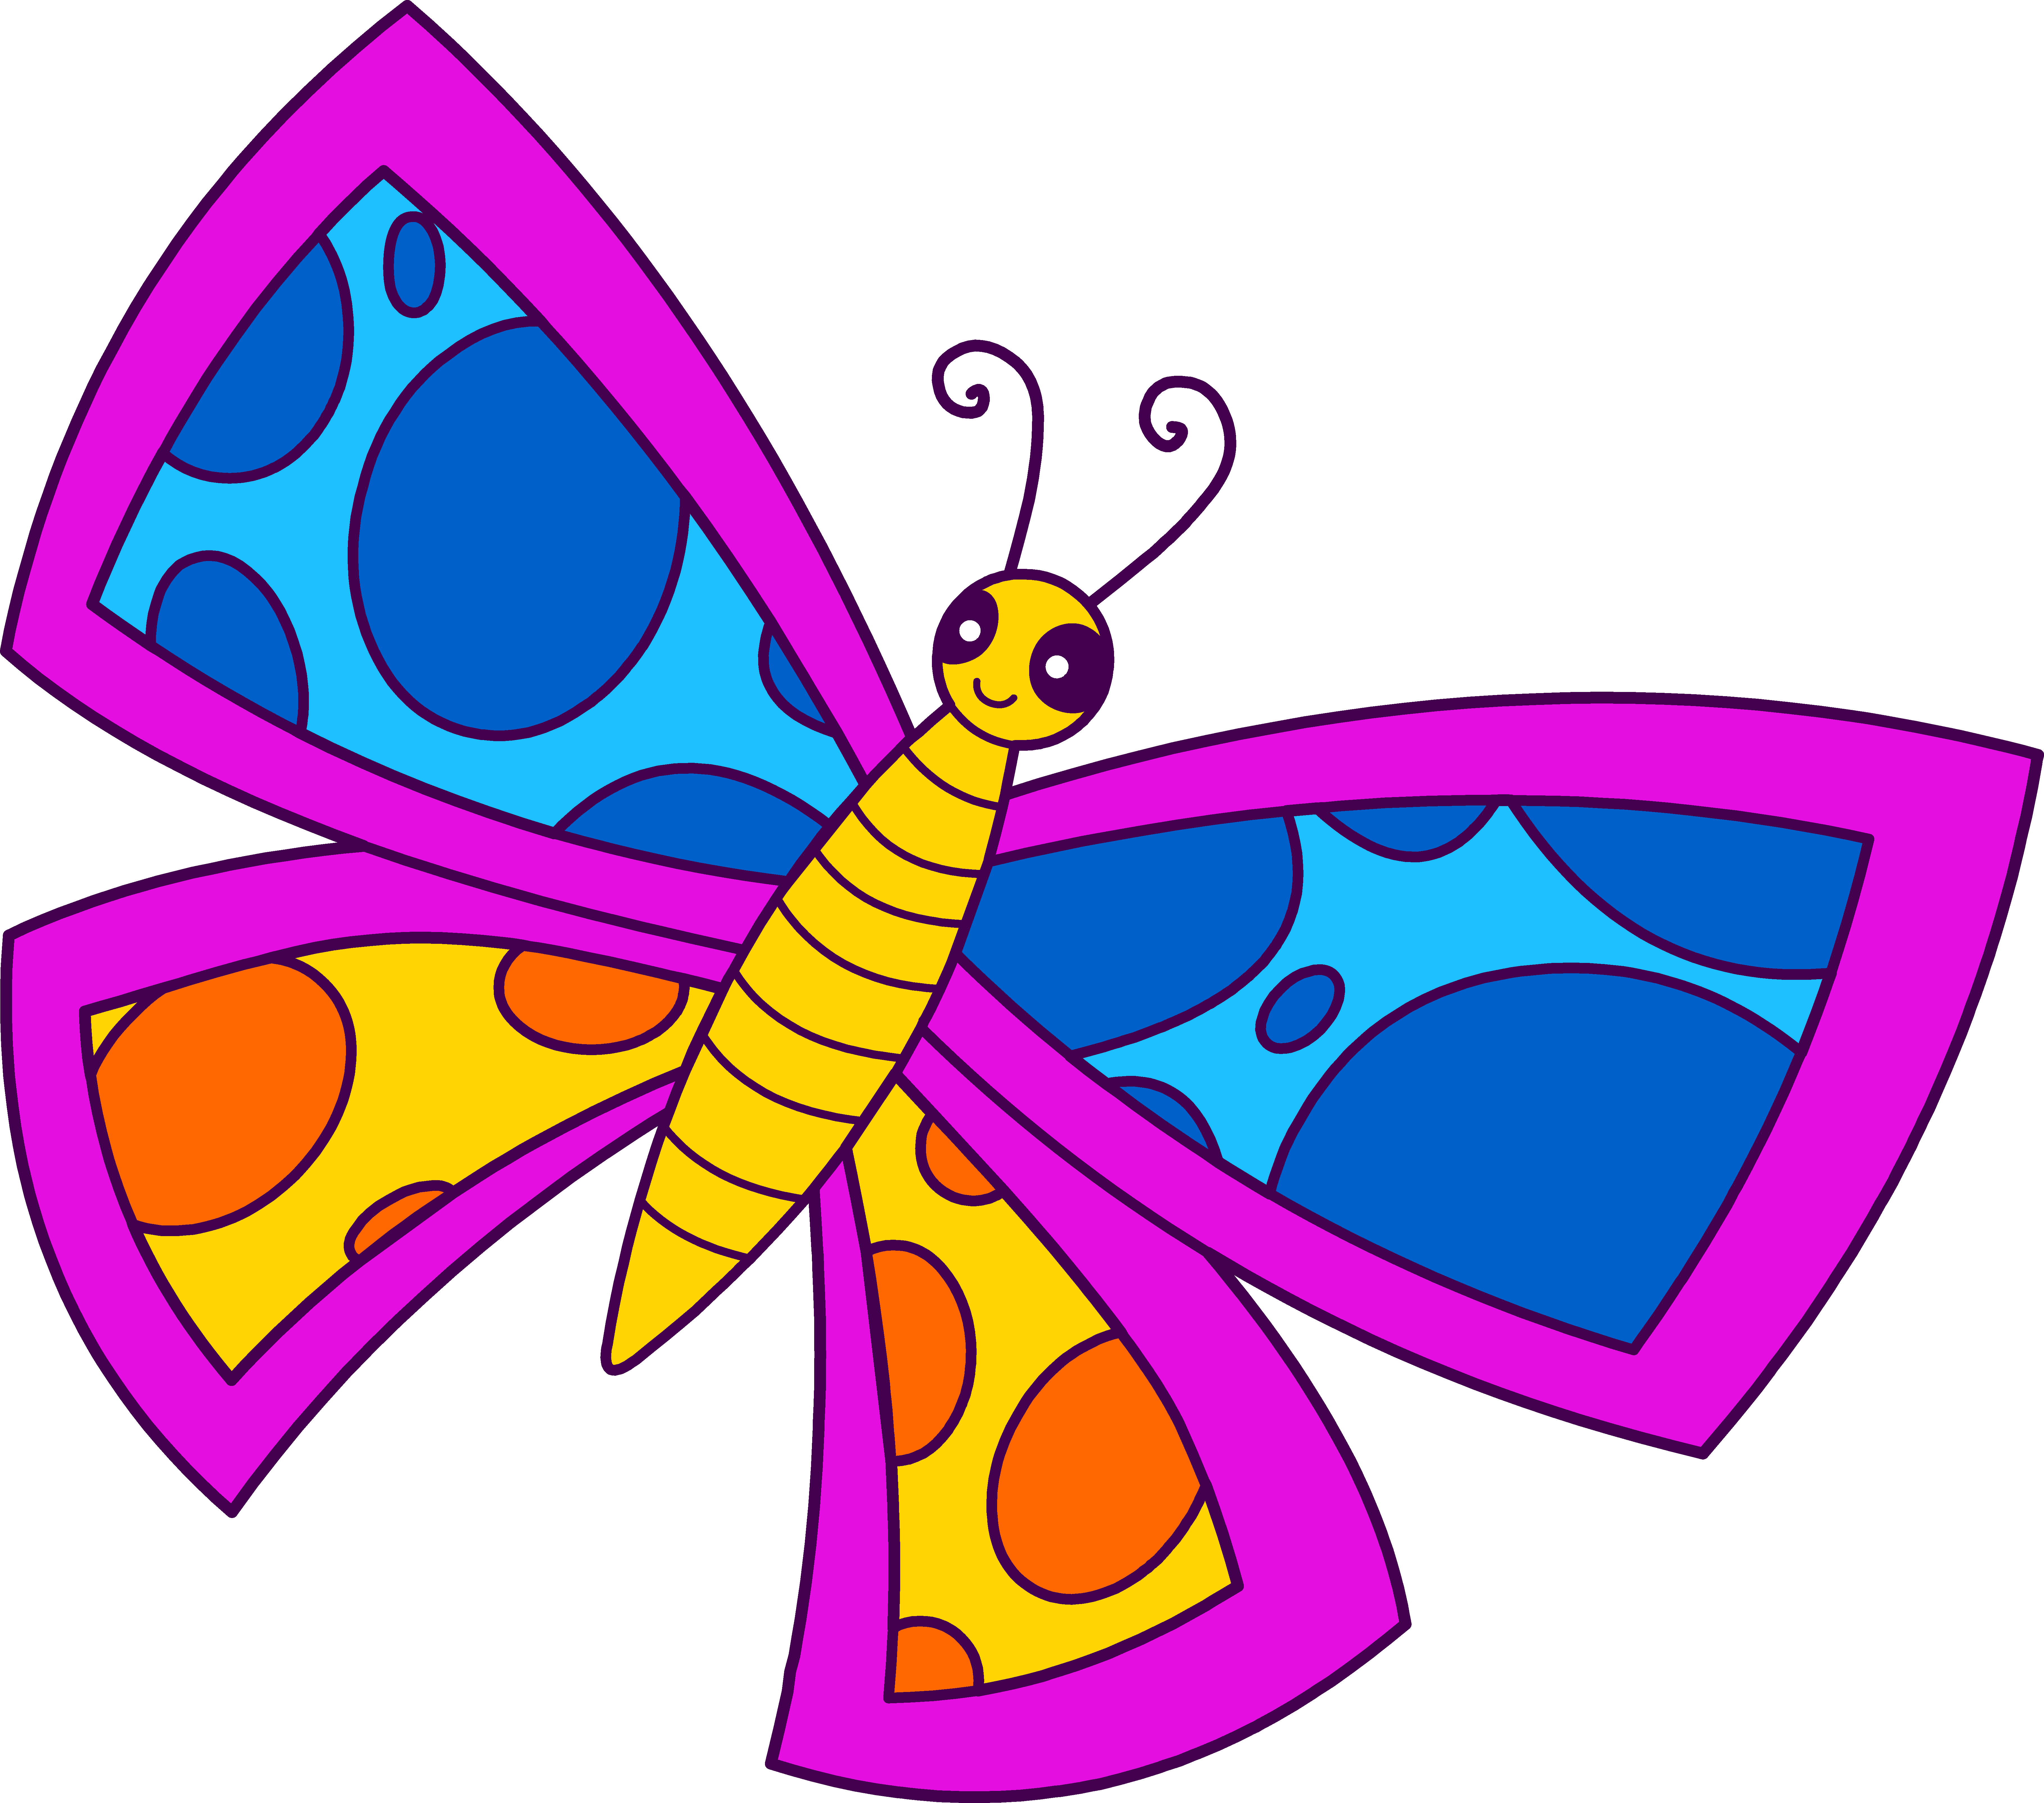 Tiny butterfly clipart vector freeuse download Free Butterfly Images Free, Download Free Clip Art, Free ... vector freeuse download